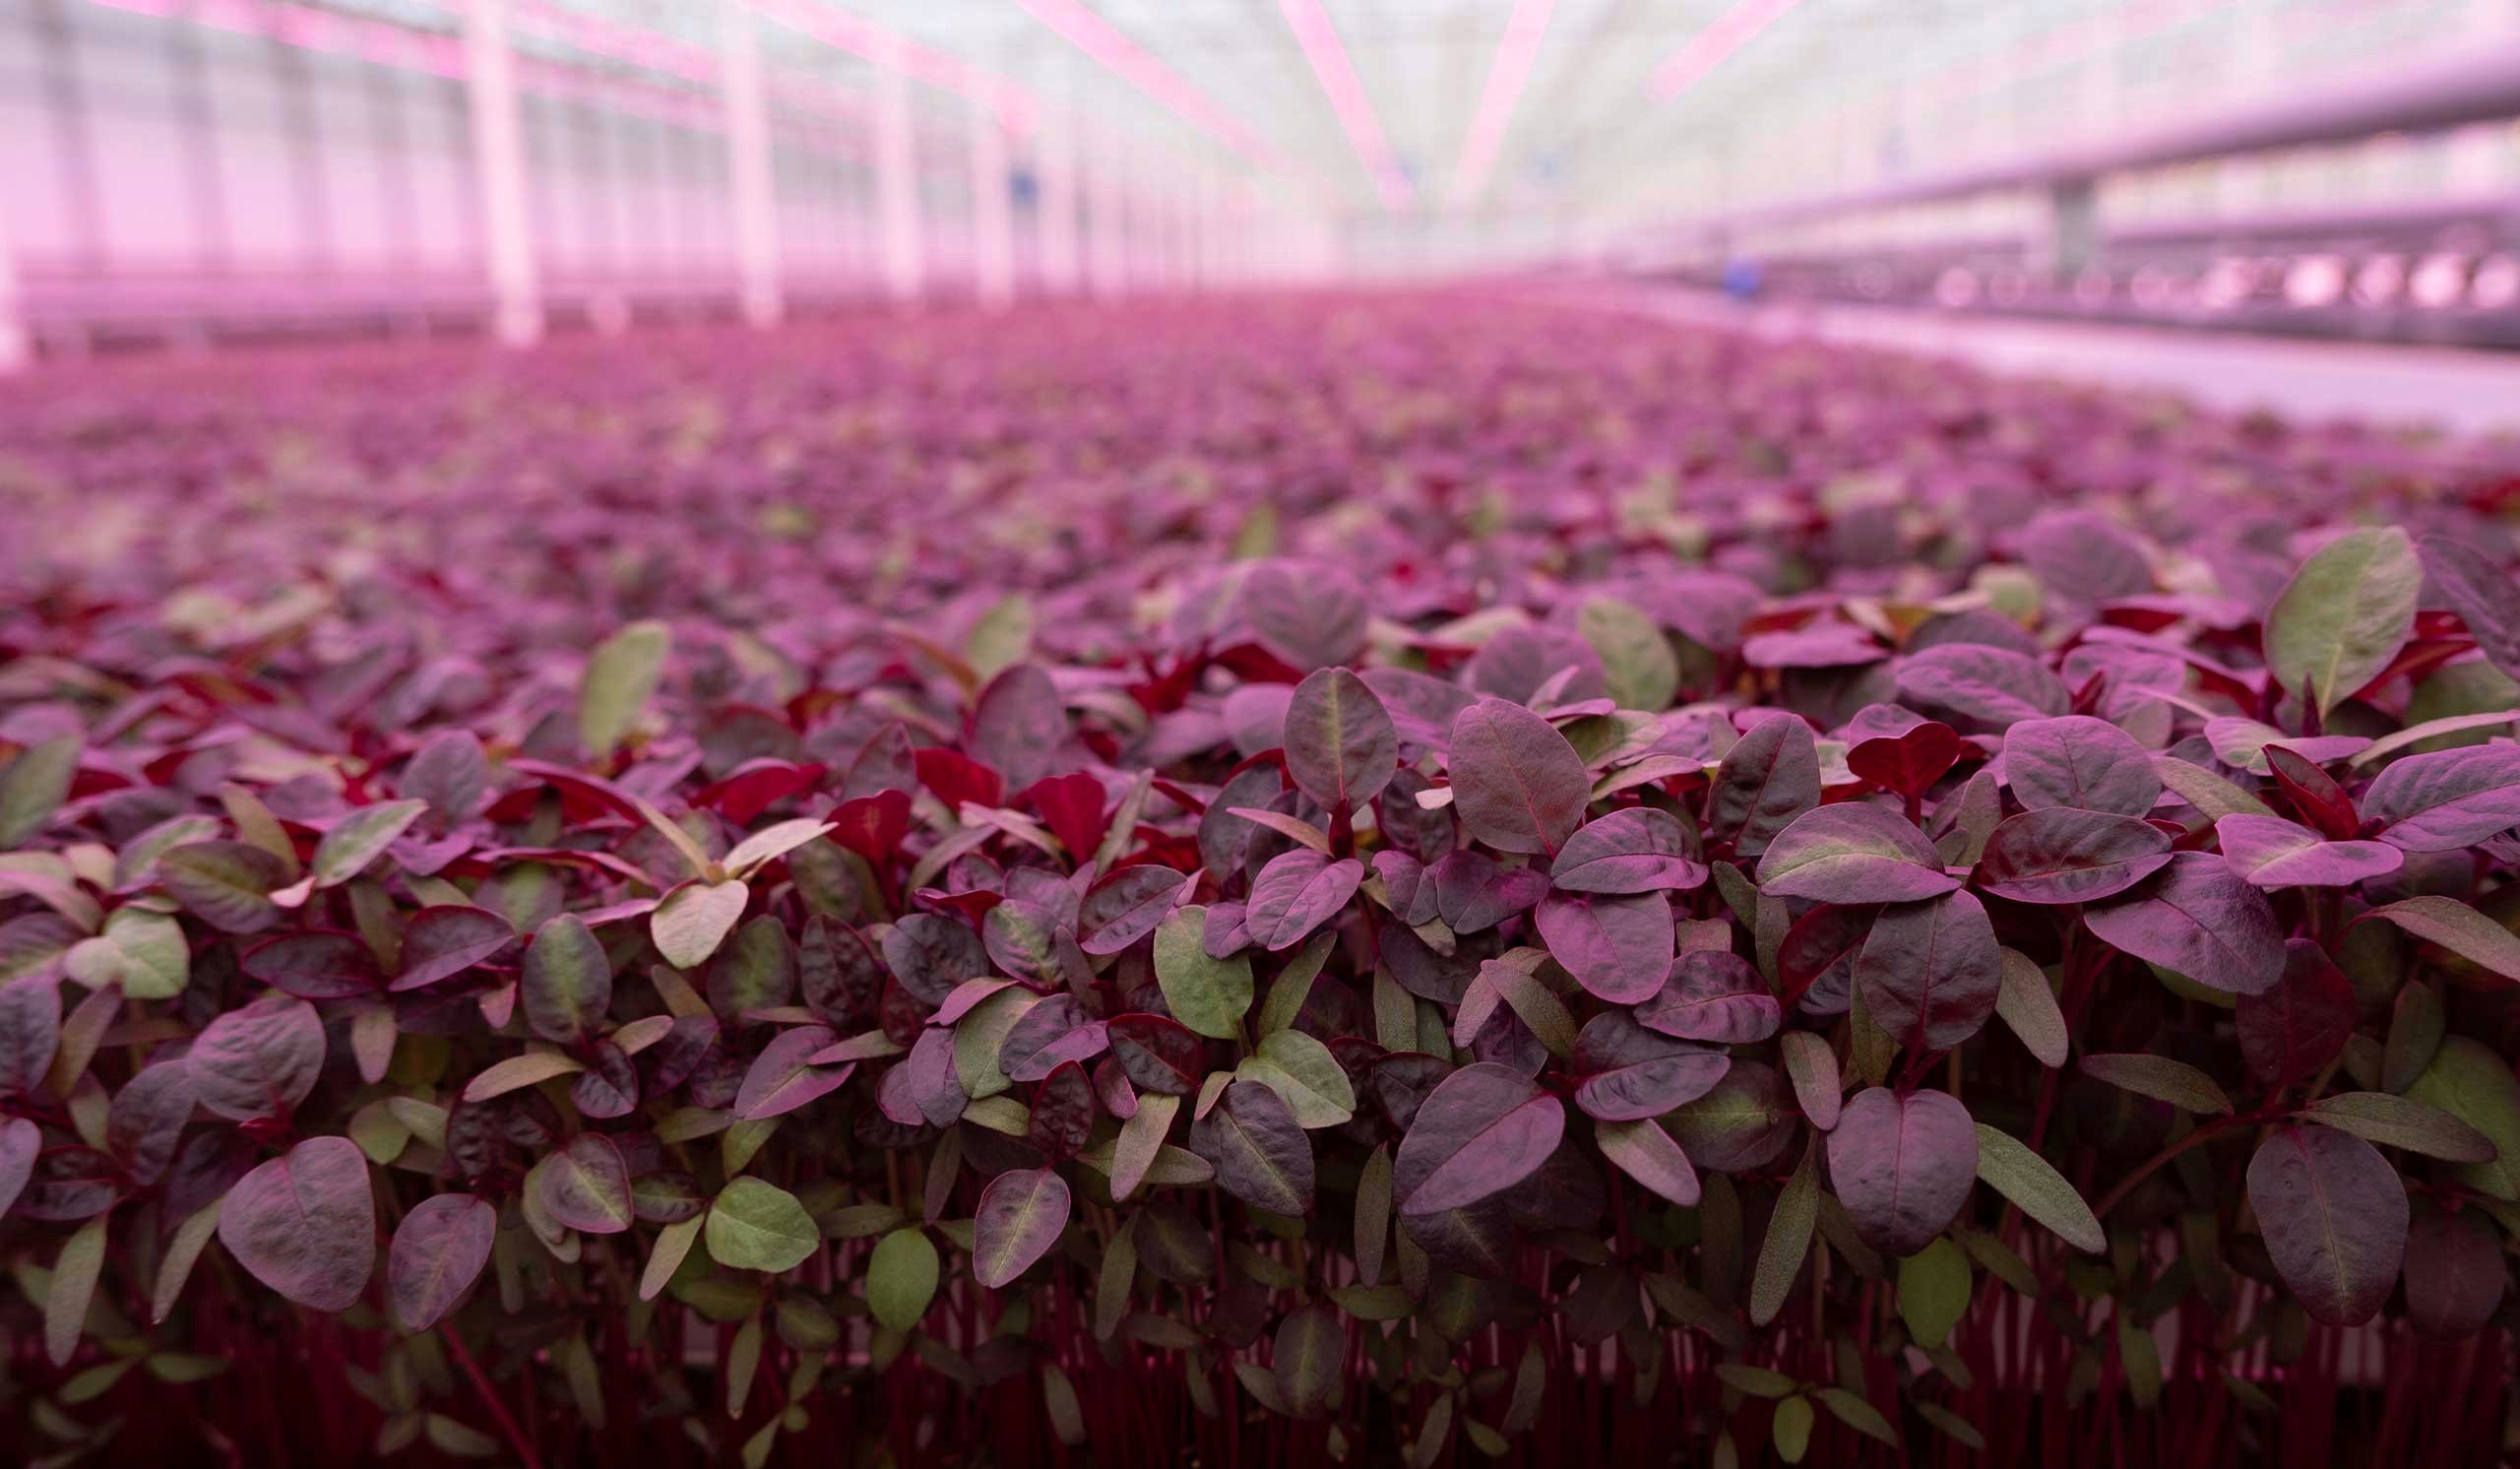 British Speciality Grower